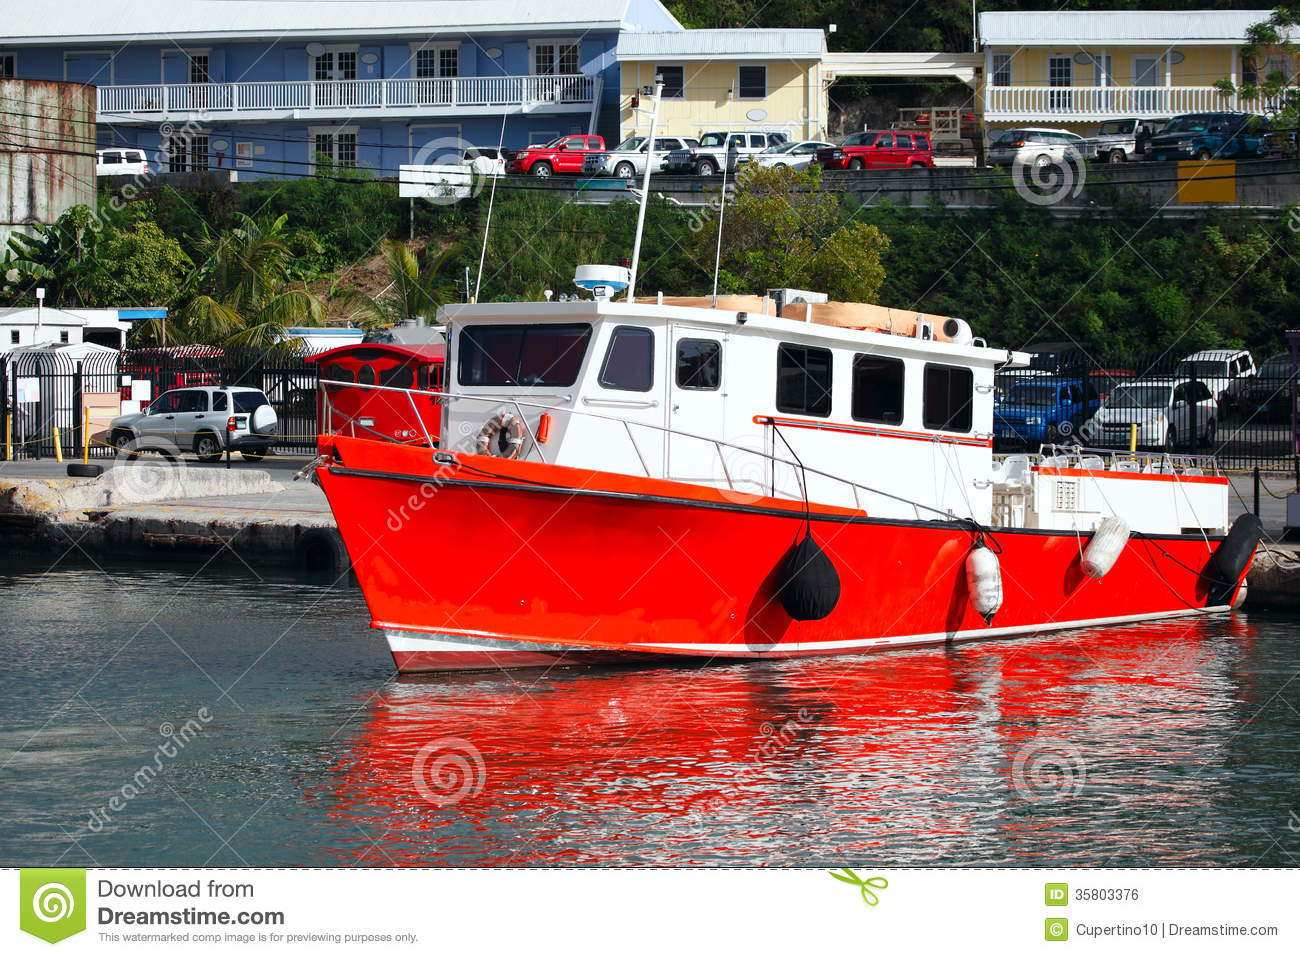 Red Boat Royalty Free Stock Image - Image: 35803376